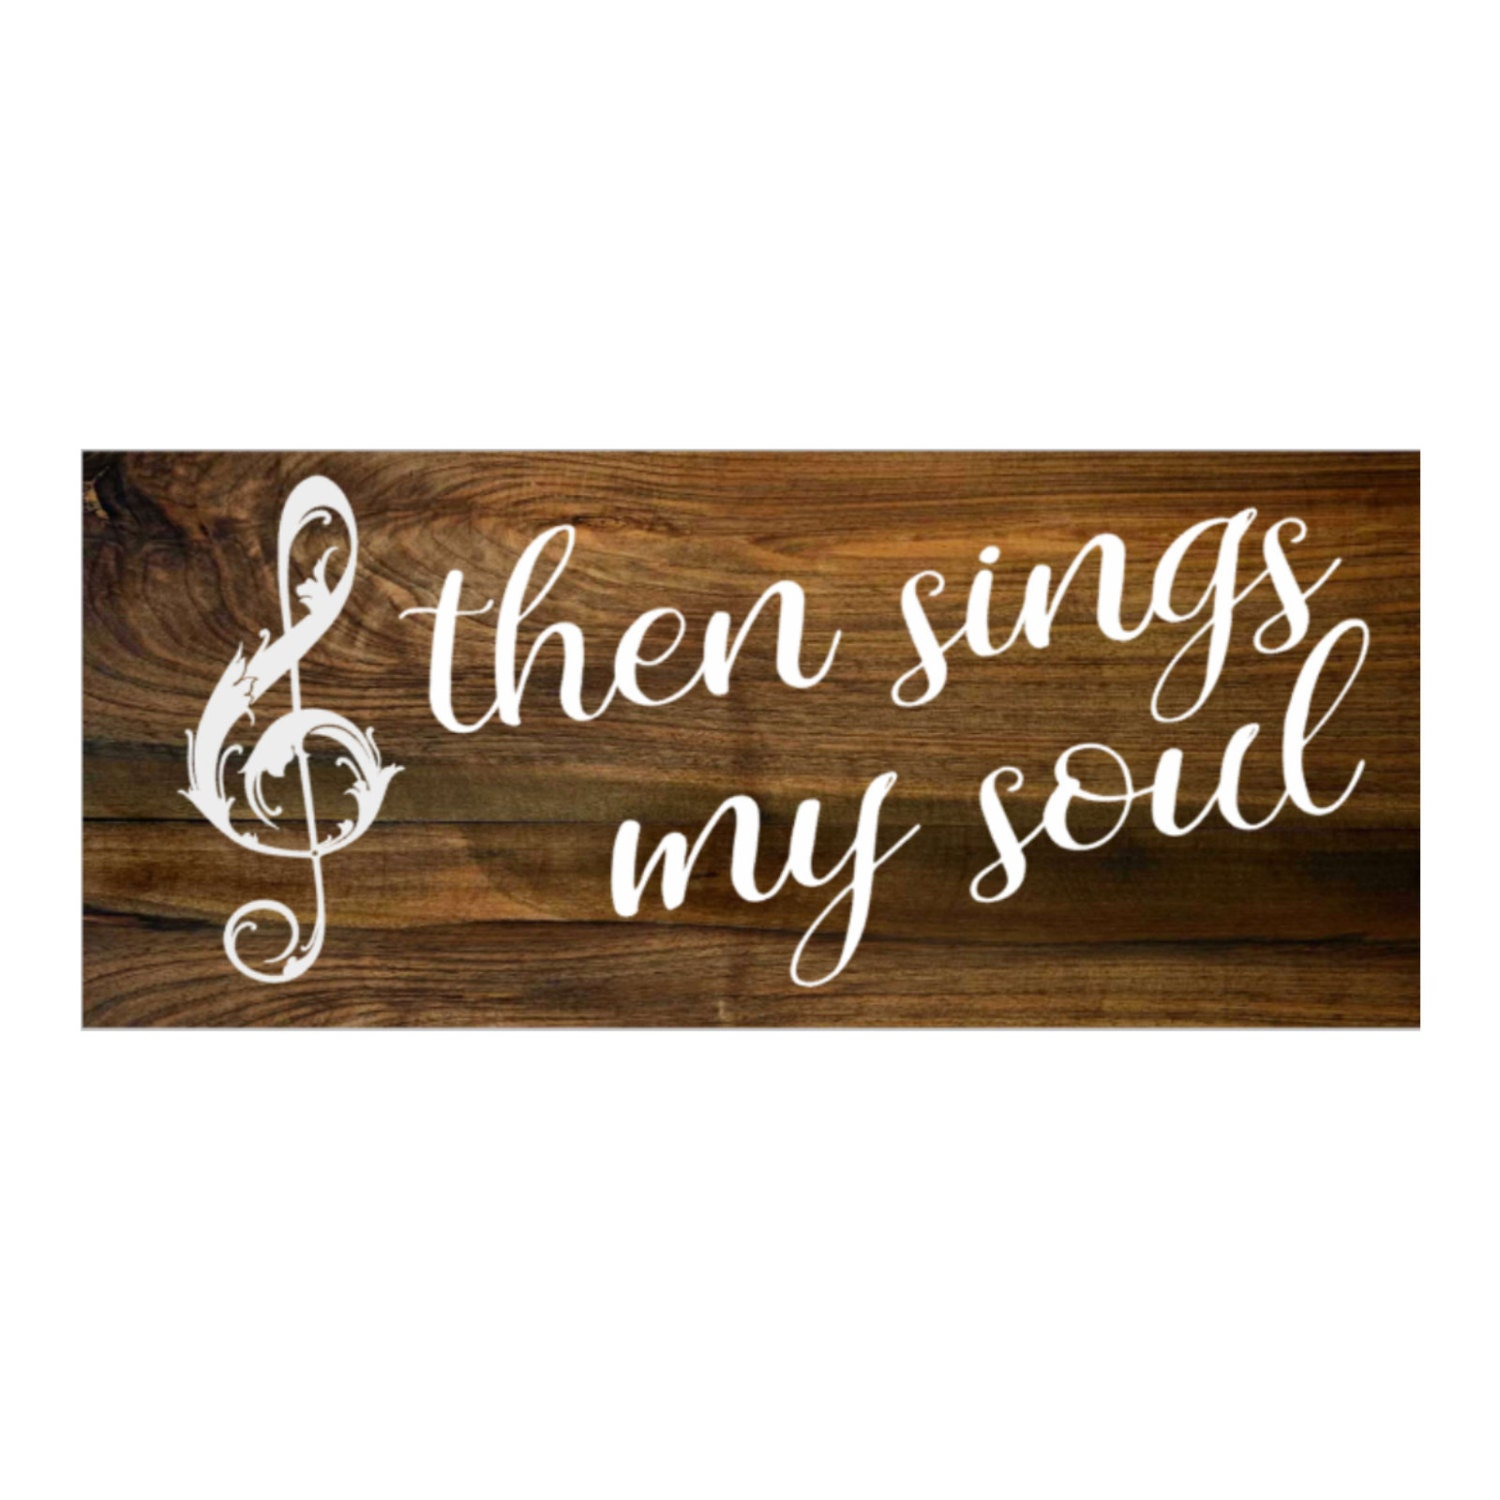 custom wood sign music personalized hymnal then church soul customized sings christian